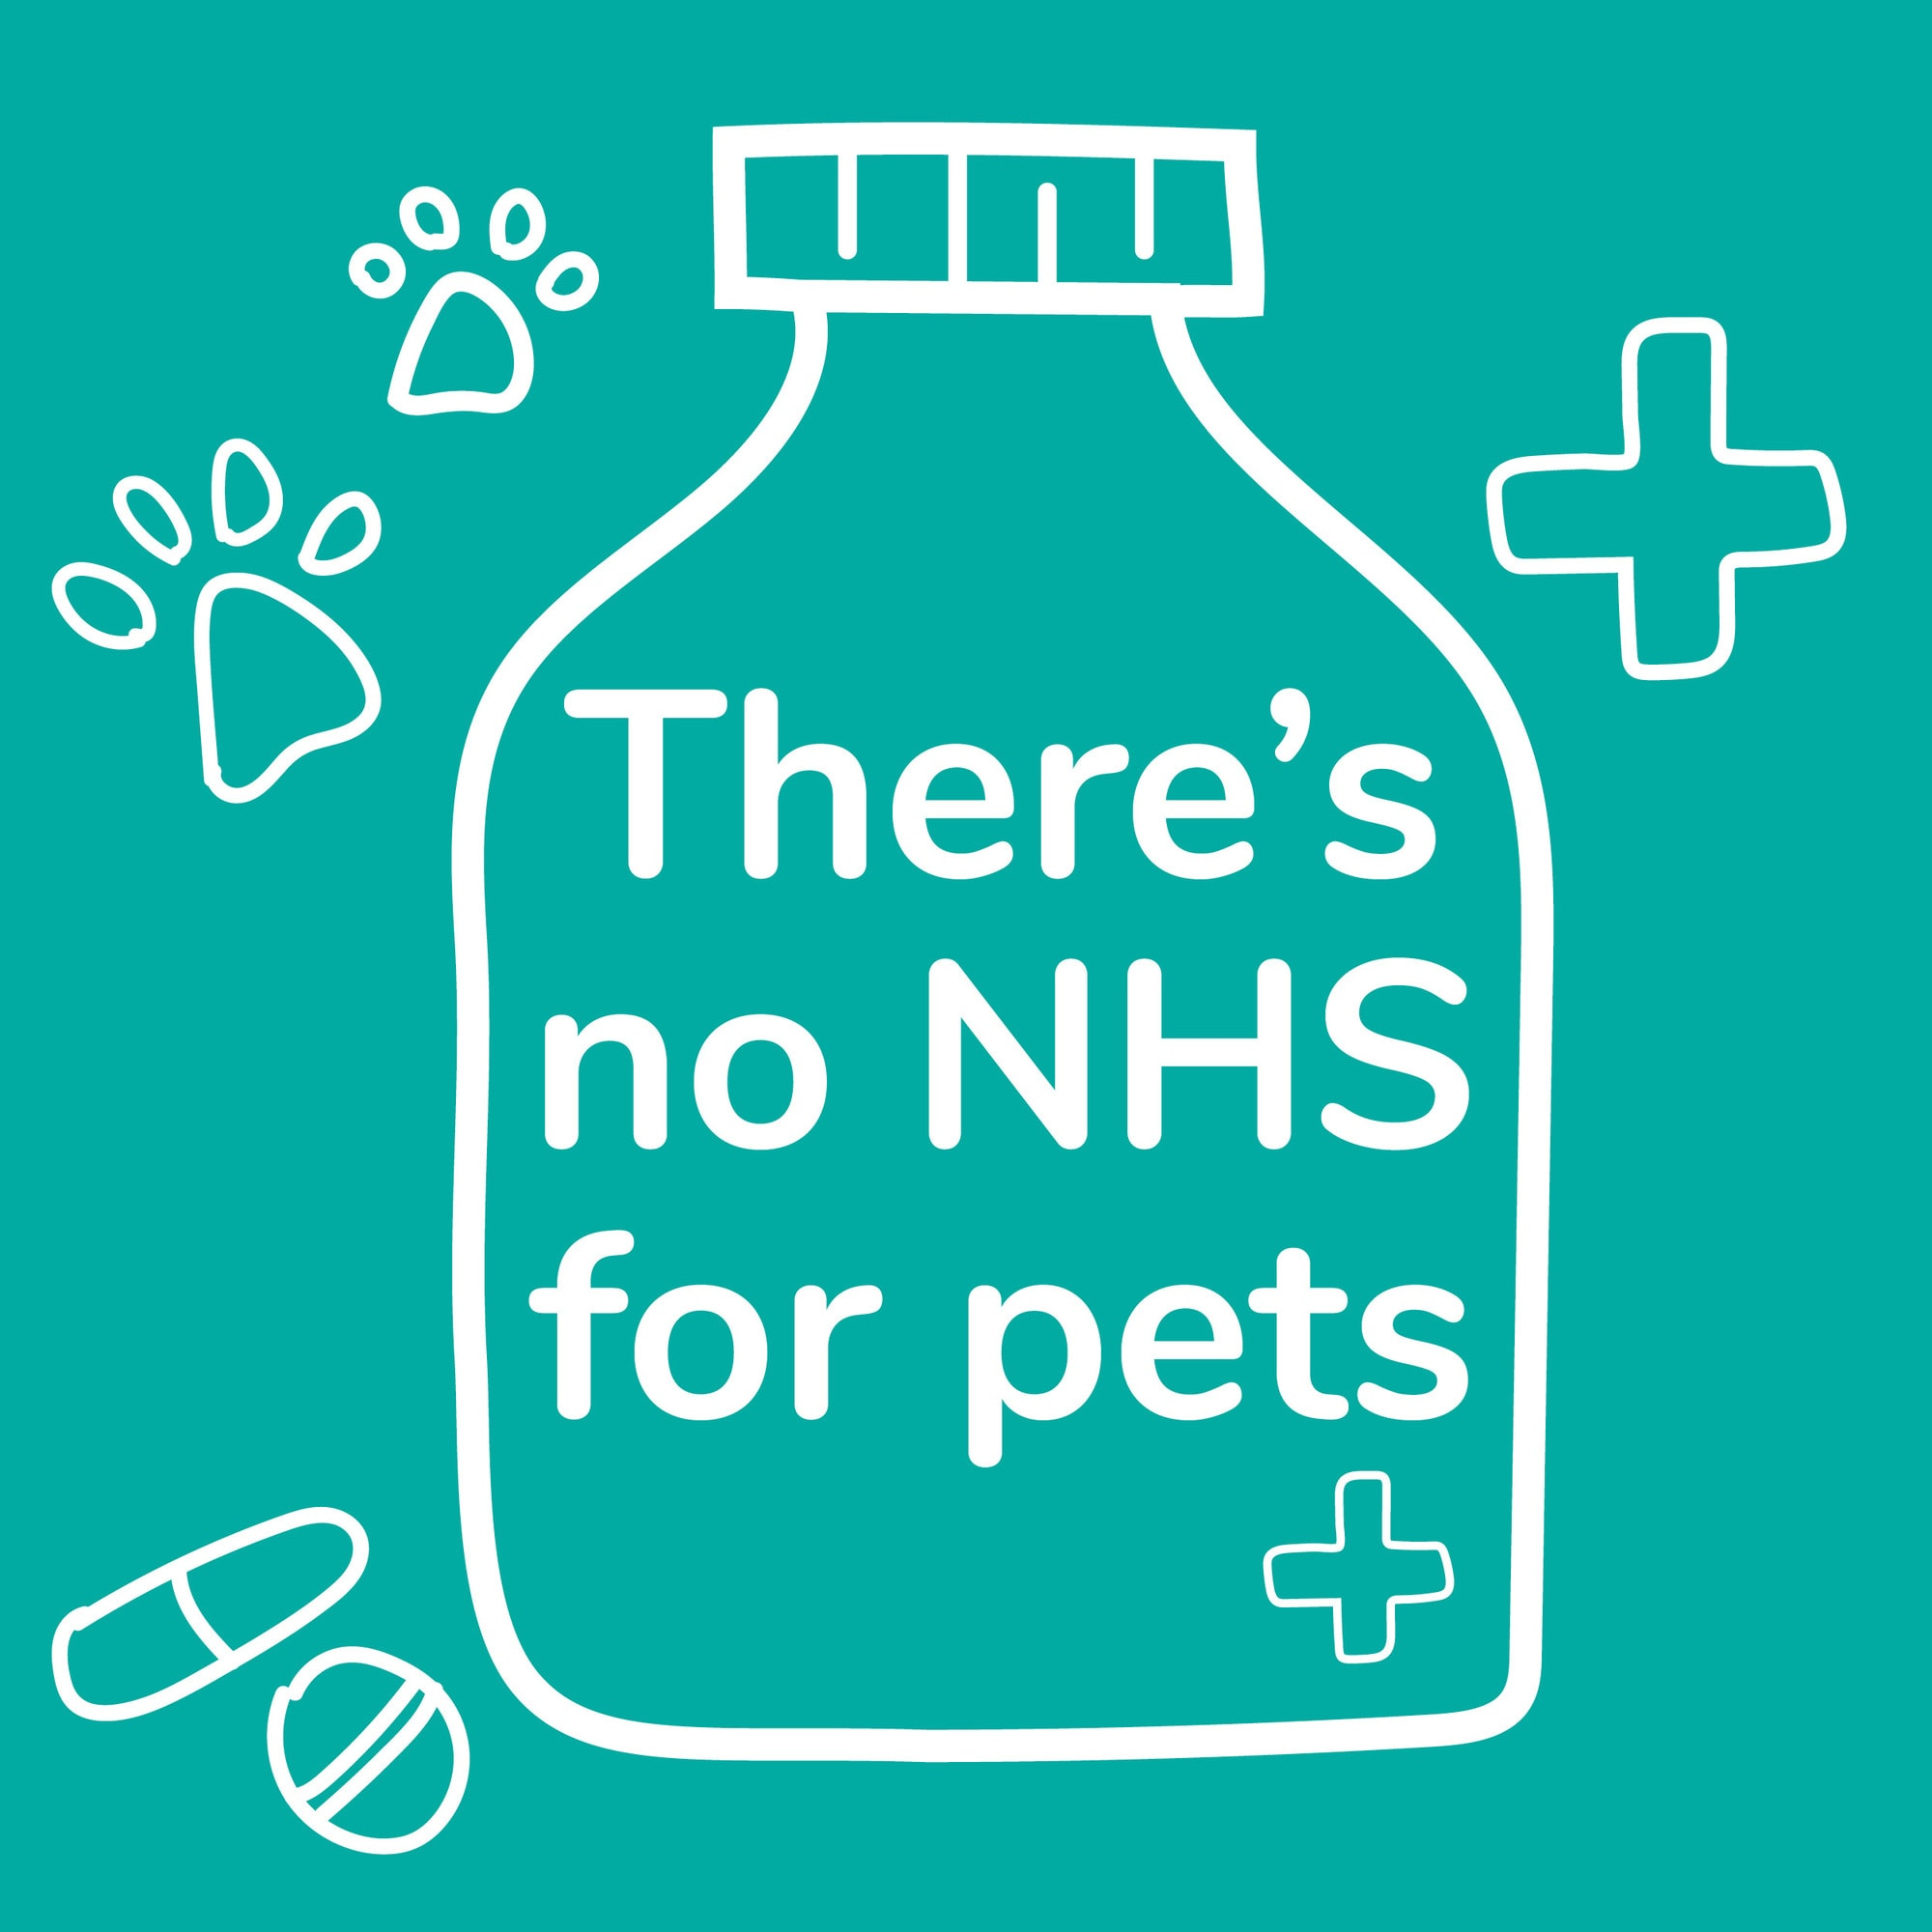 There's no NHS for pets. Pet insurance from MiPet Cover. Let's get #morepetsinsured